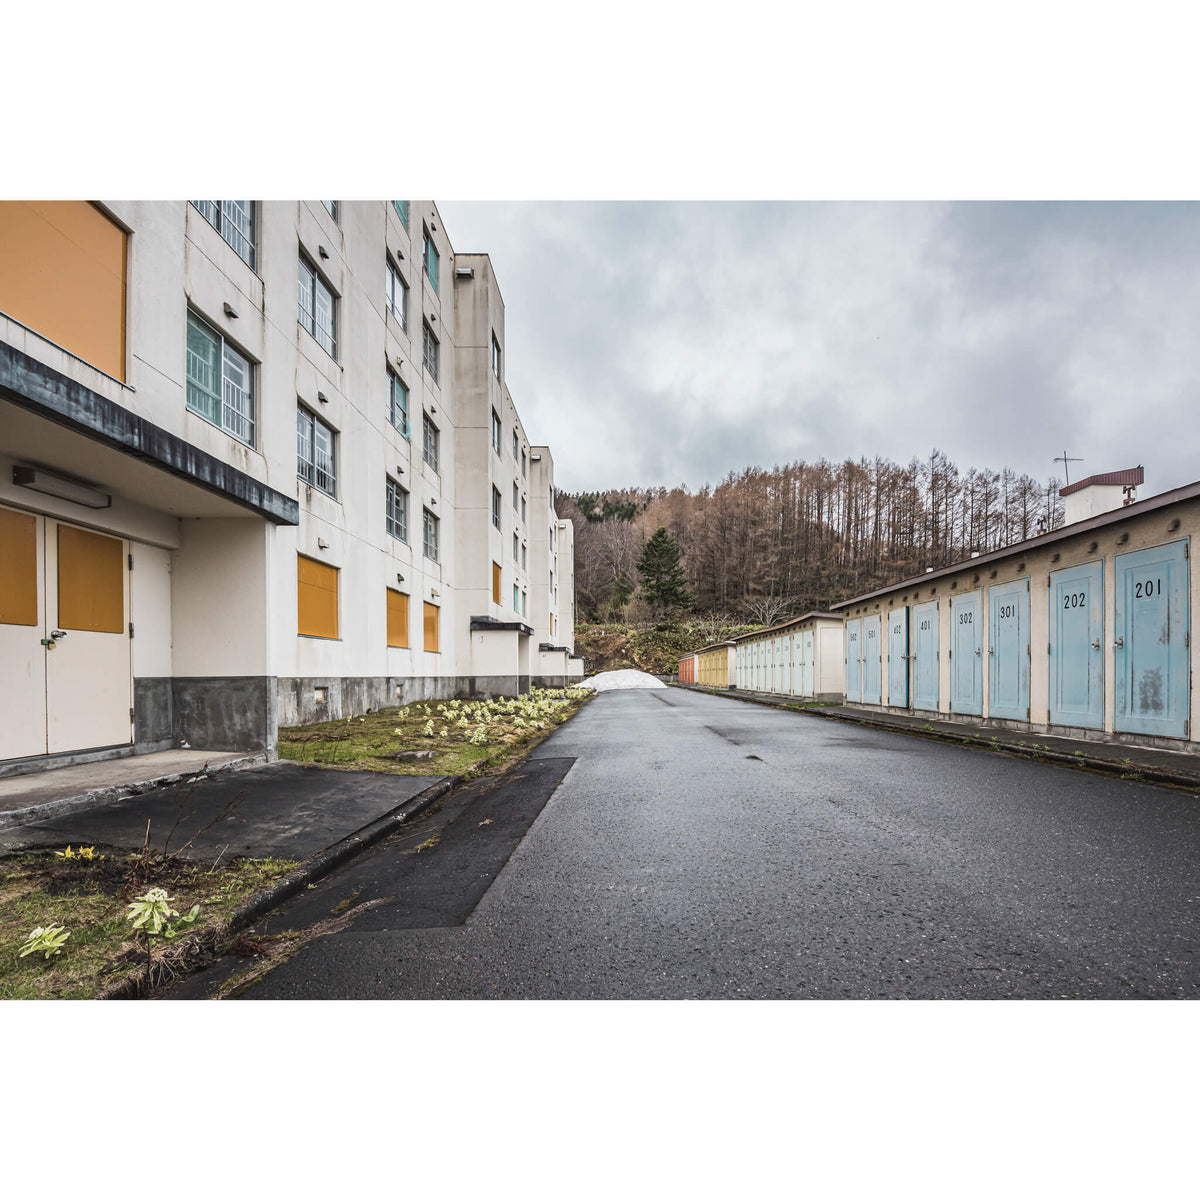 Public Housing and Storage | Streetscapes of Yubari Fine Art Print - Lost Collective Shop